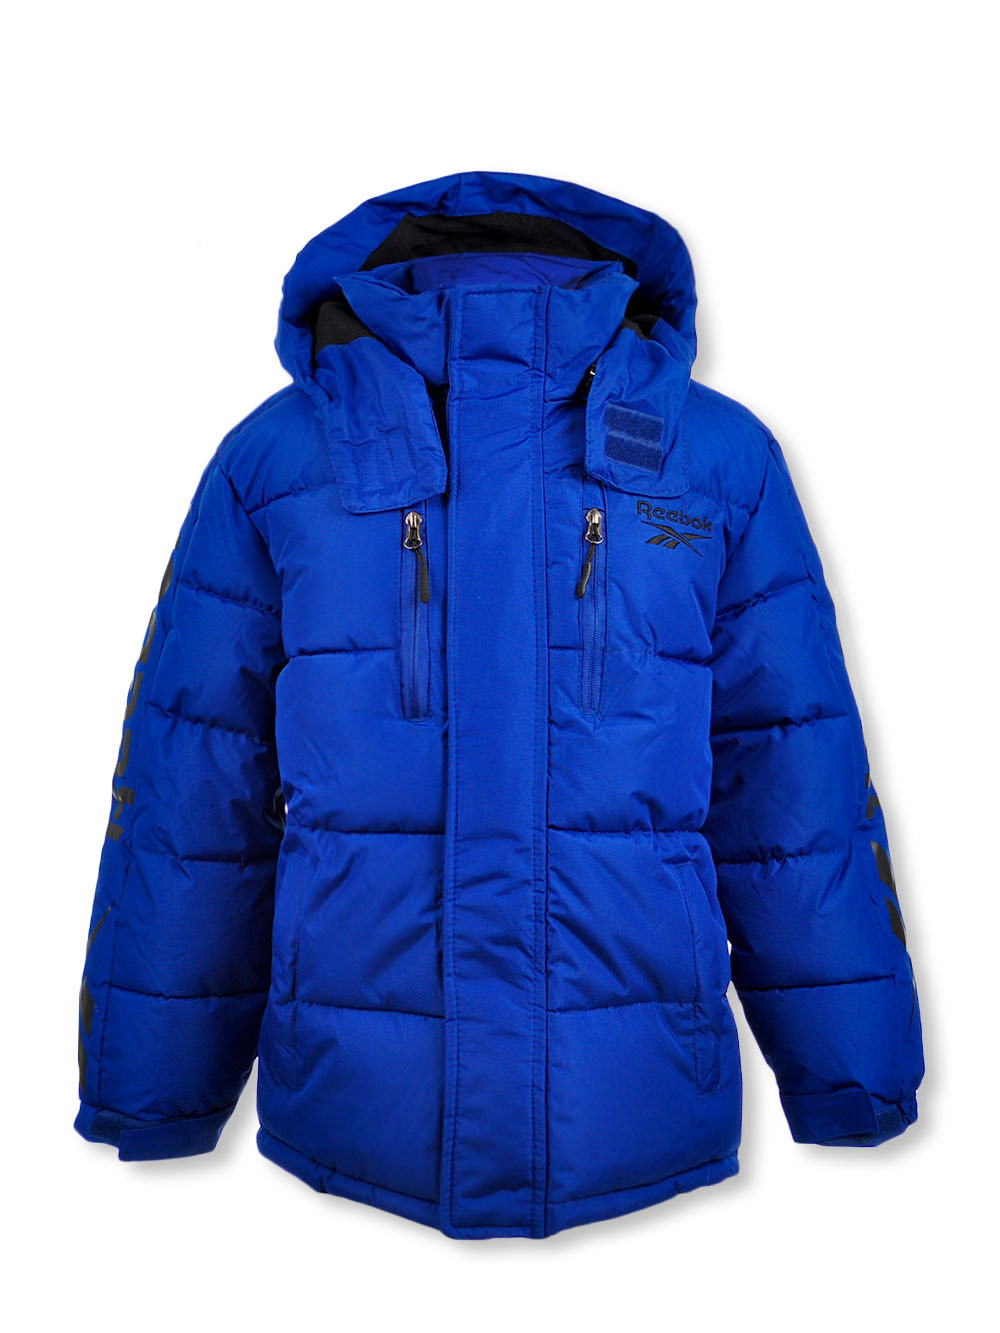 Jackets and Coats Insulated Hooded Parka